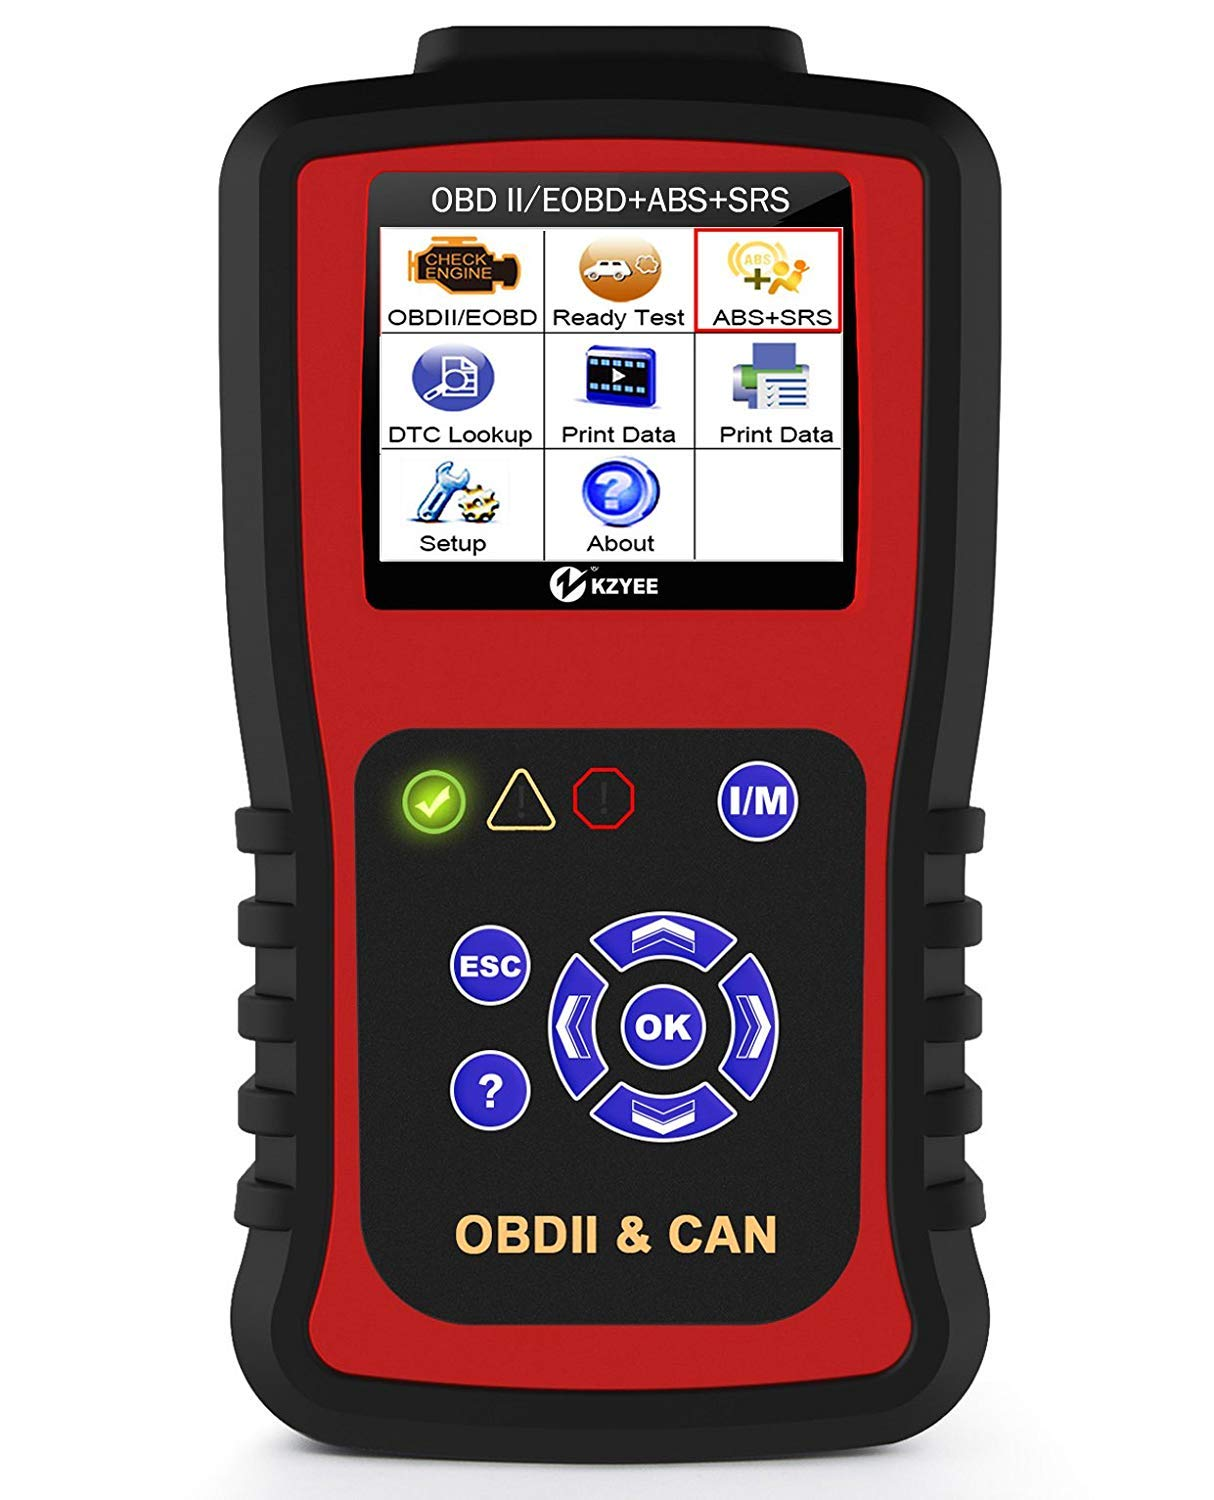 Kzyee KC501 Auto OBD2 Airbag Code Reader, ABS SRS Scanner Car Check Engine Light Diagnostic Scan Tool with Live Data/Emission Monitor Status/O2 Sensor Data/Mode 6